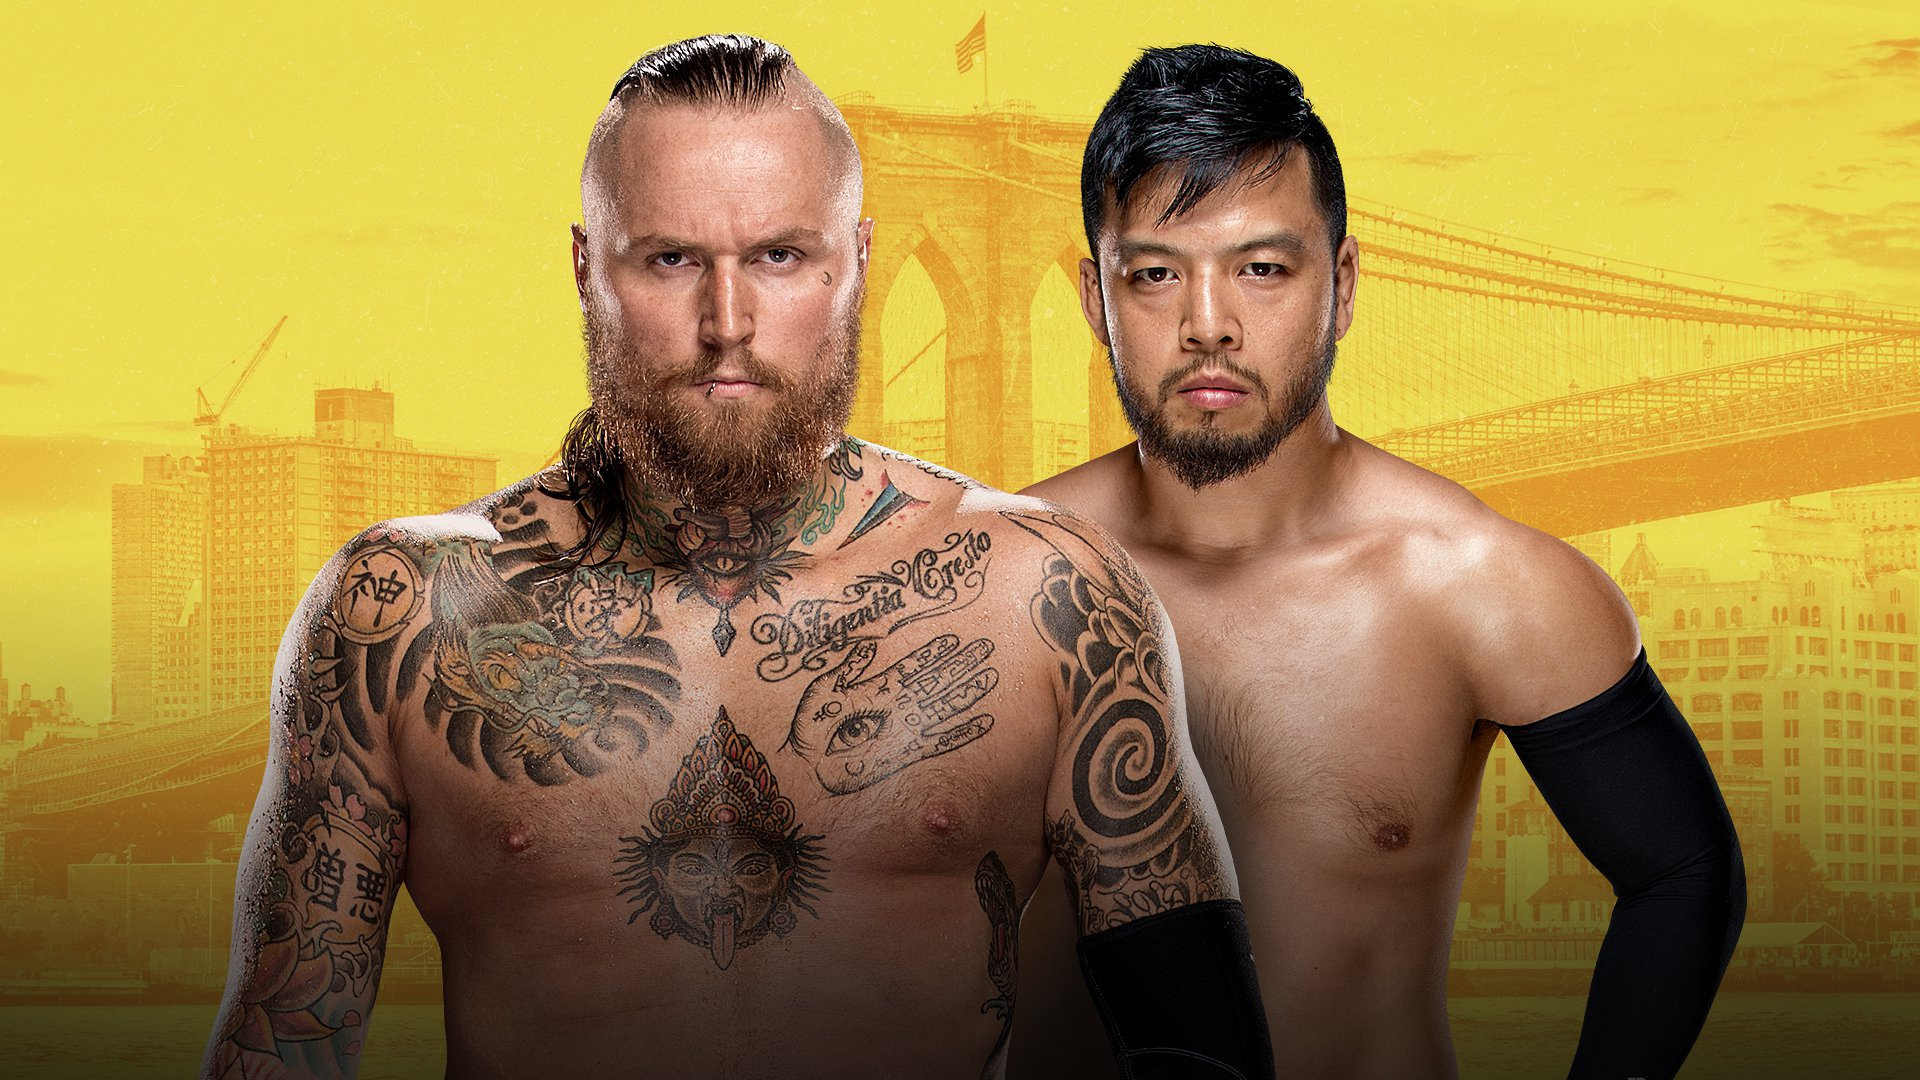 NXT TakeOver - Brooklyn III: Aleister Black vs. Hideo Itami